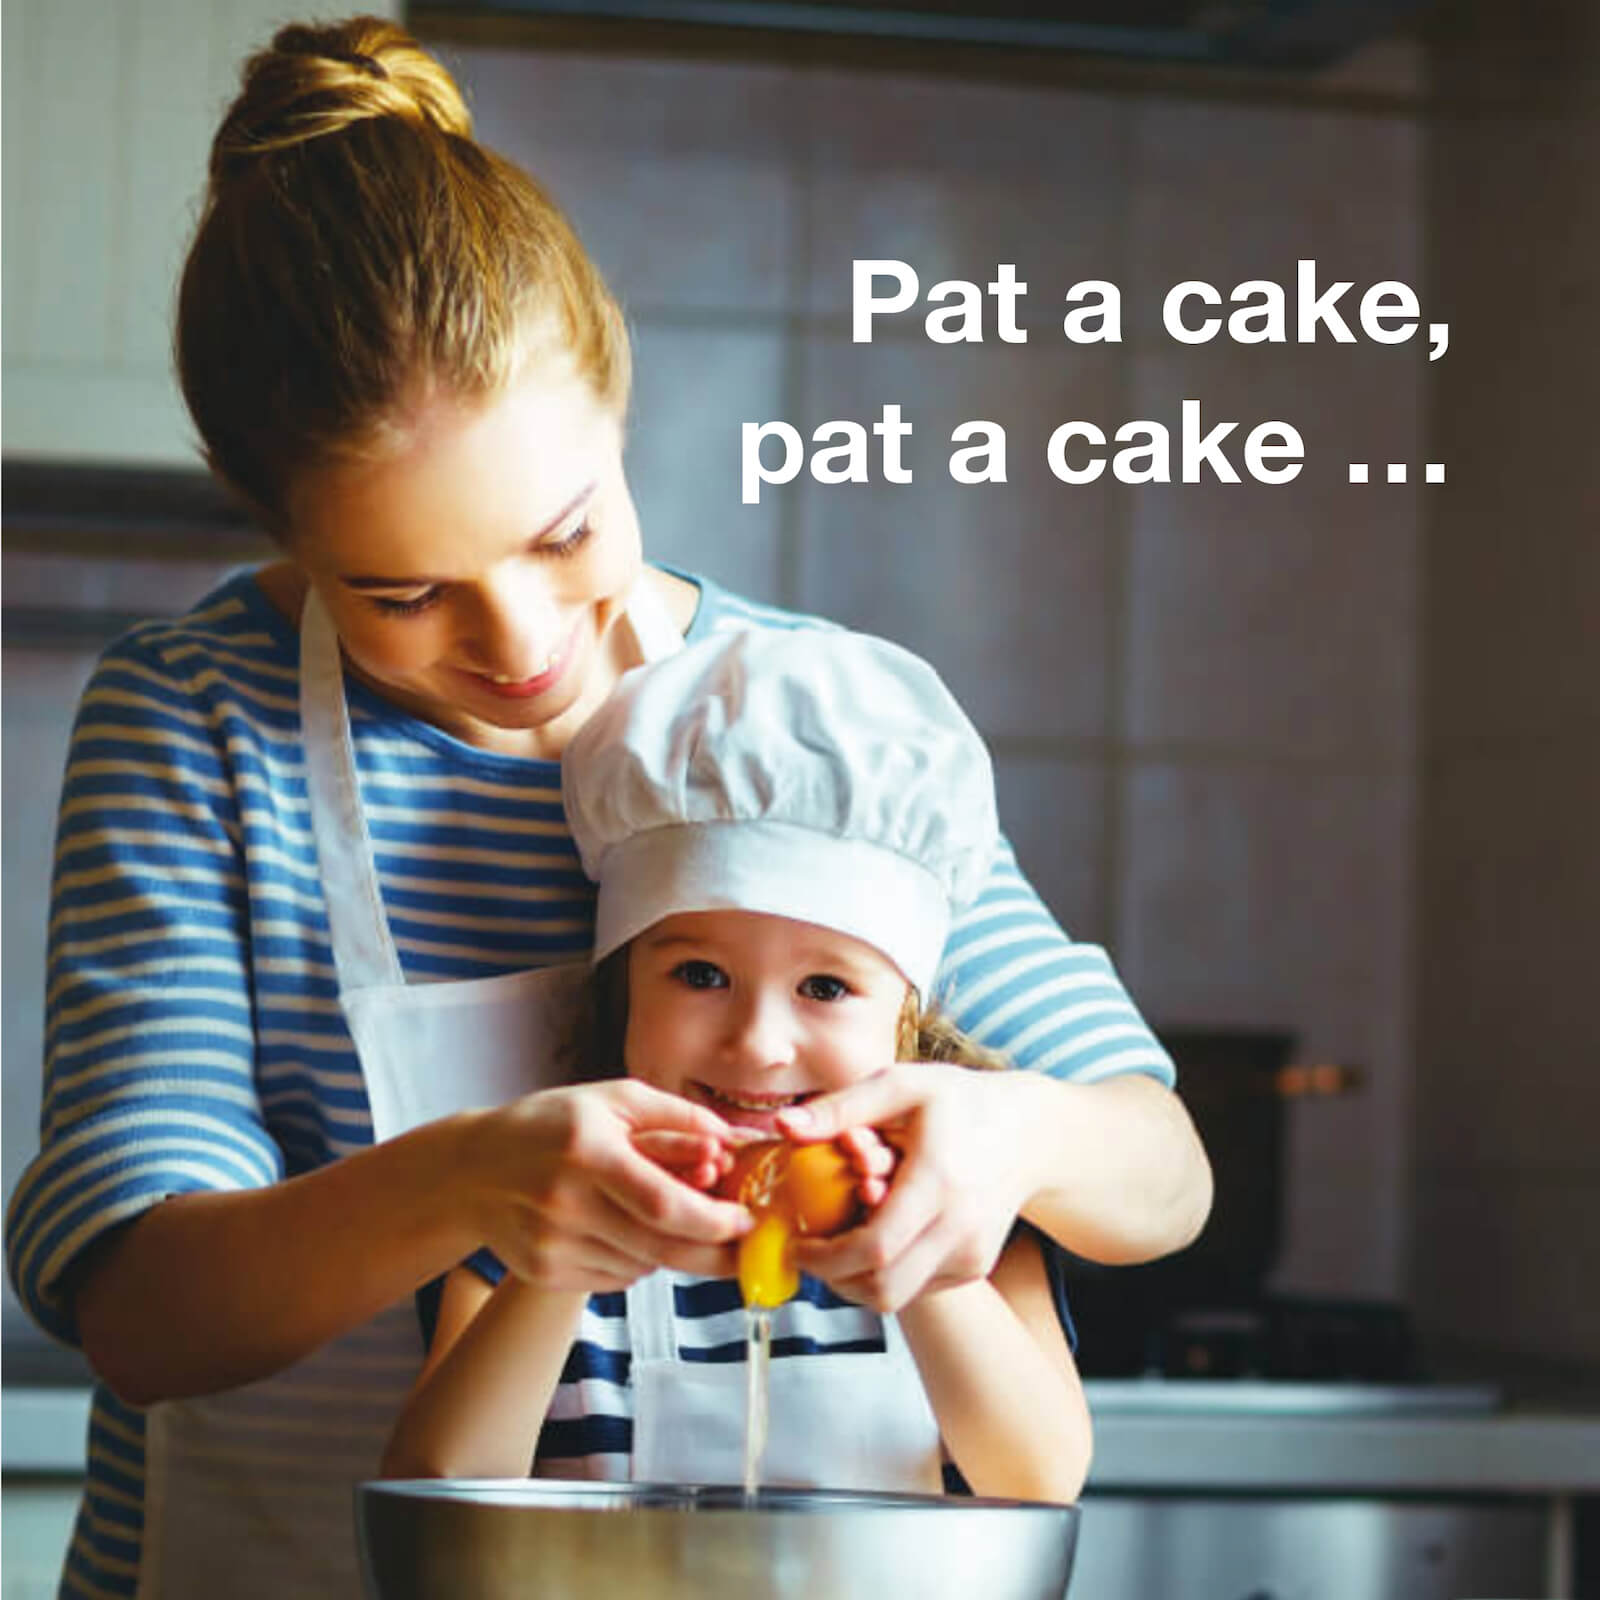 tipps and advice for nannies in the private household